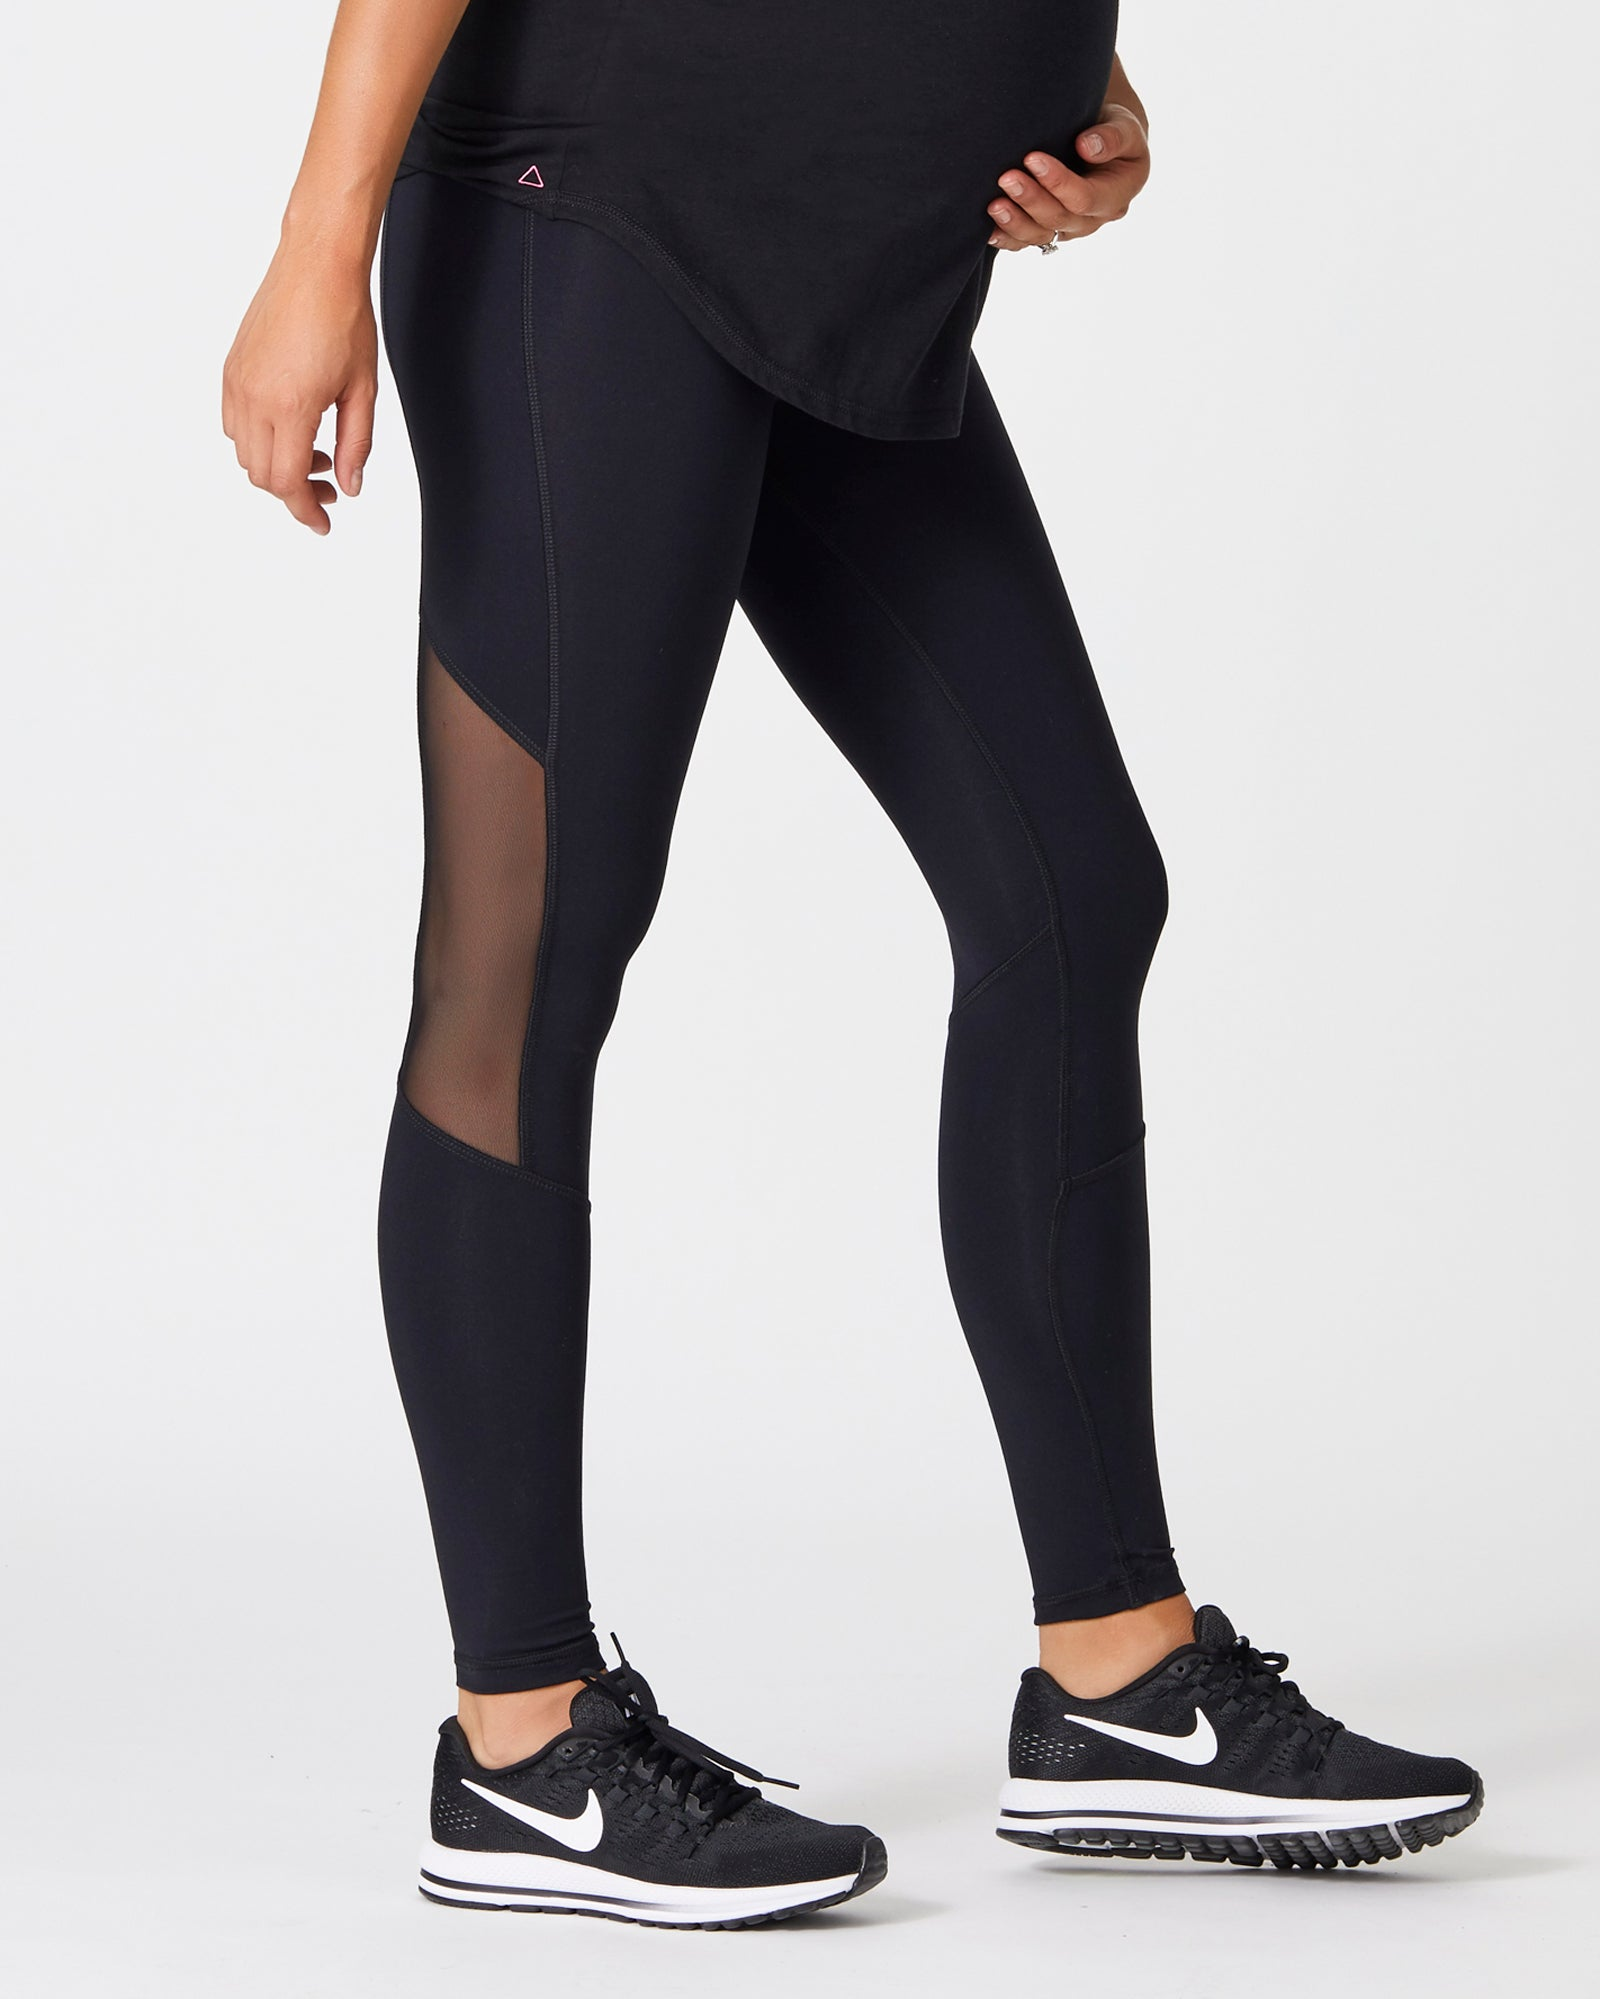 Active X PIAP Performance Legging